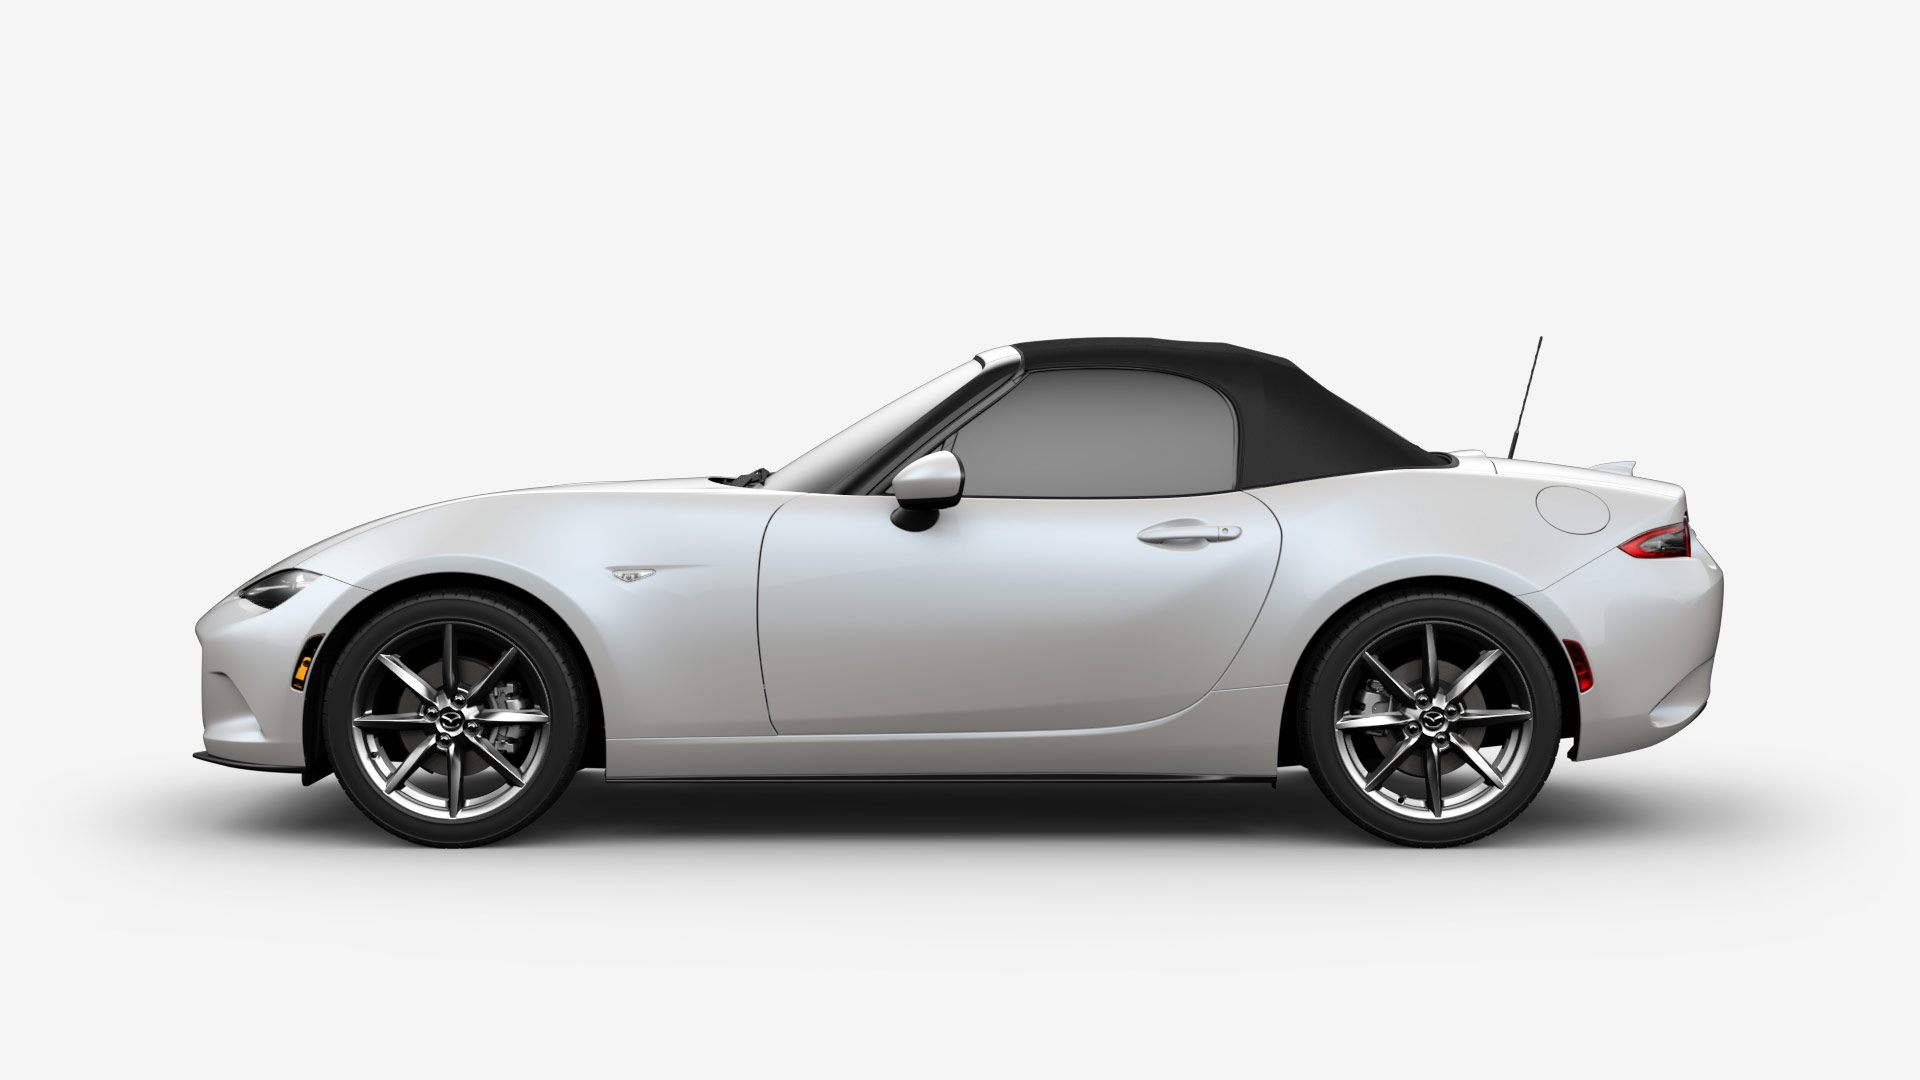 2017 mazda mx 5 miata convertible roadster mazda usa autos post. Black Bedroom Furniture Sets. Home Design Ideas